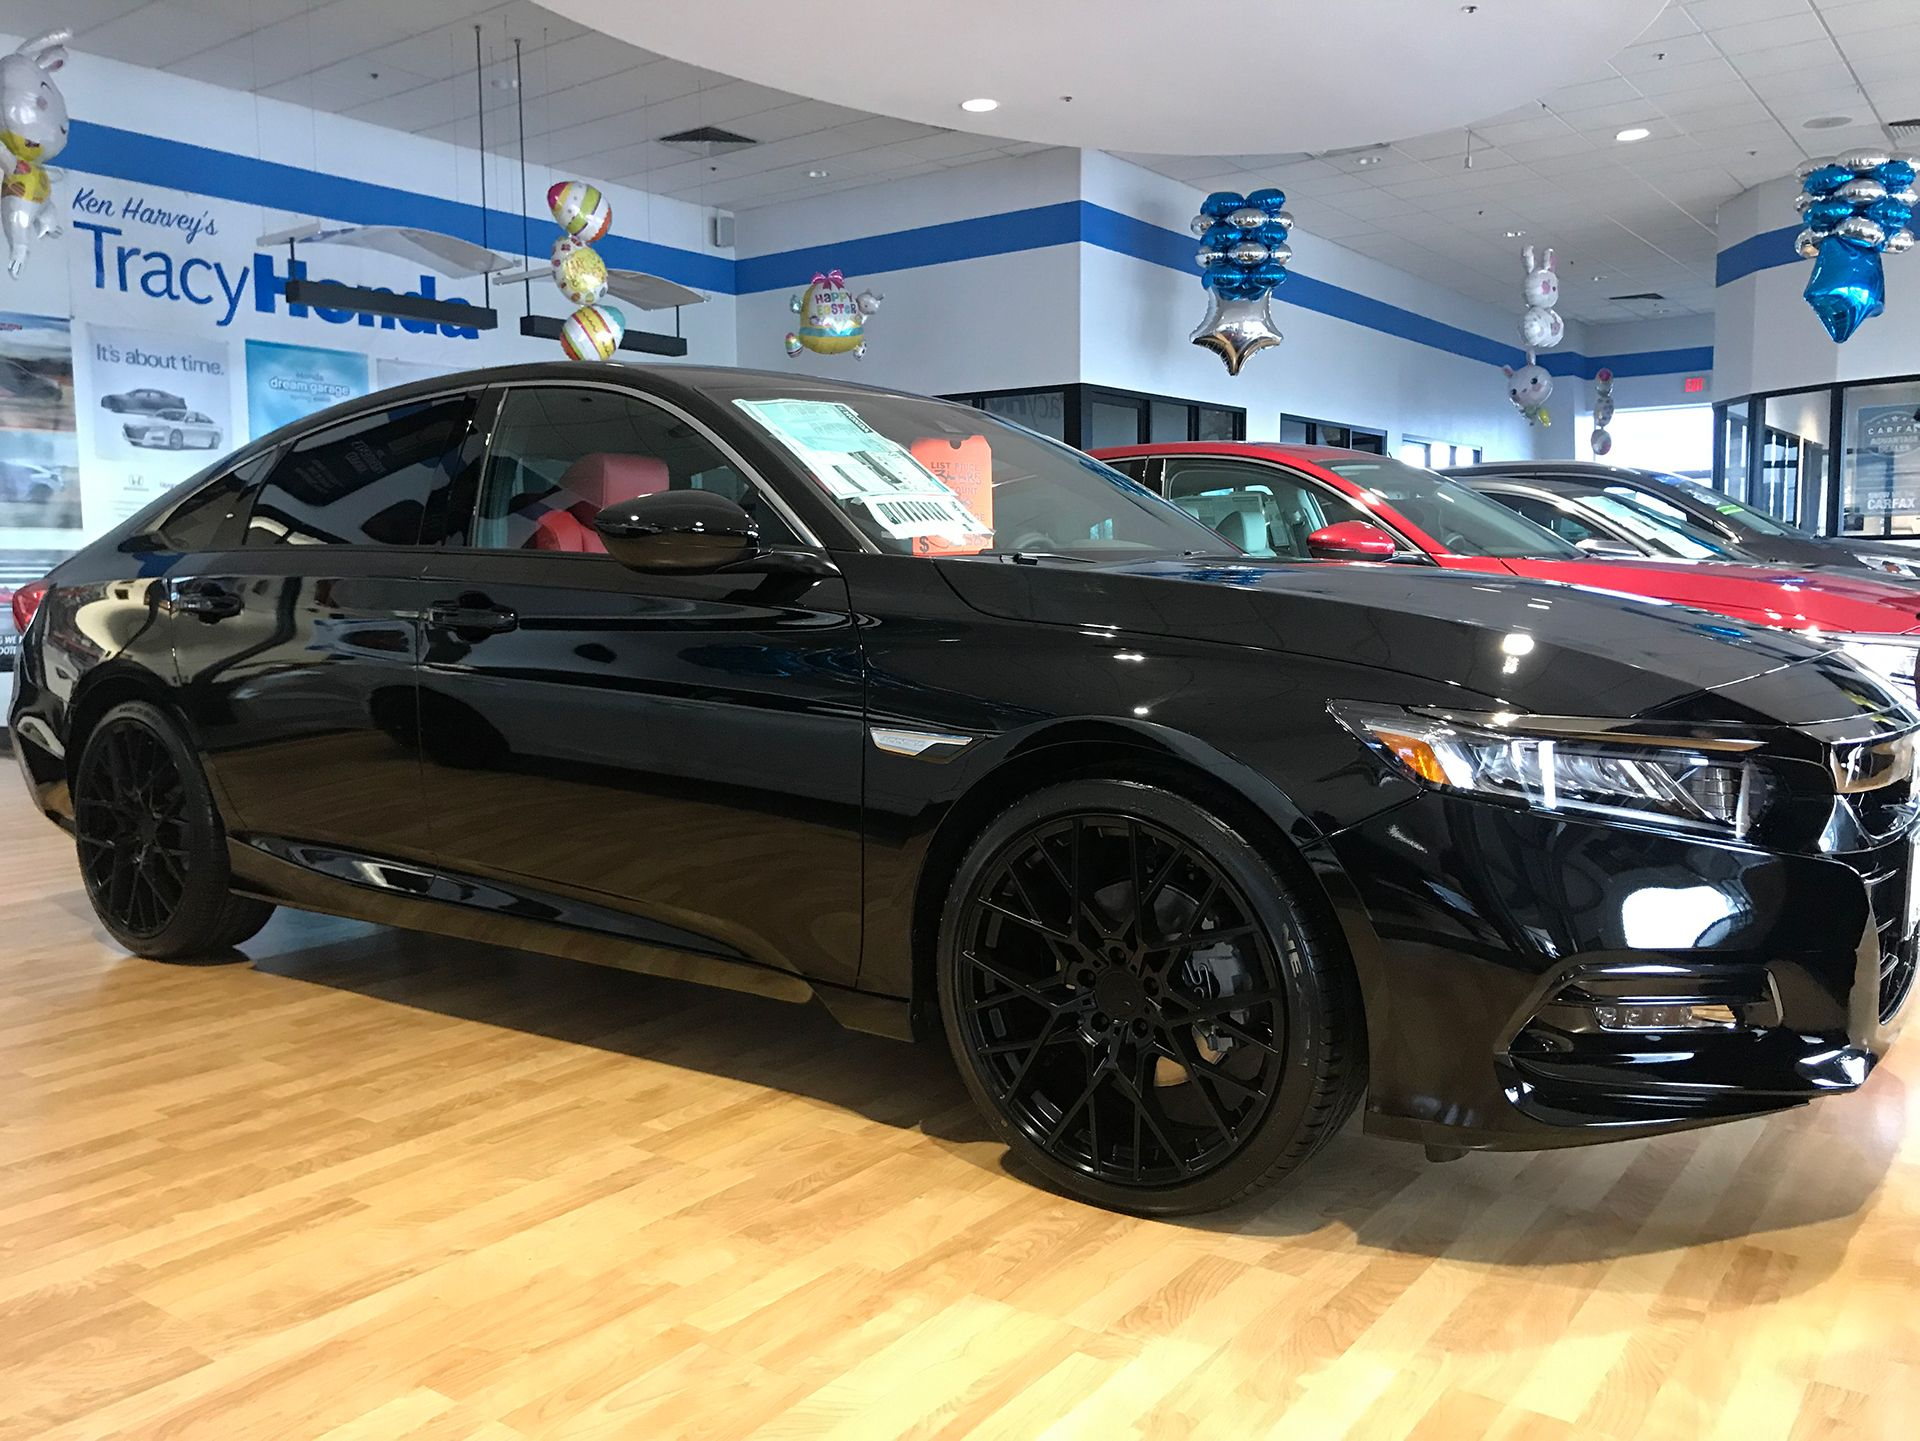 "2019 Honda Accord 20"" TSW Sebring gloss black mounted on"